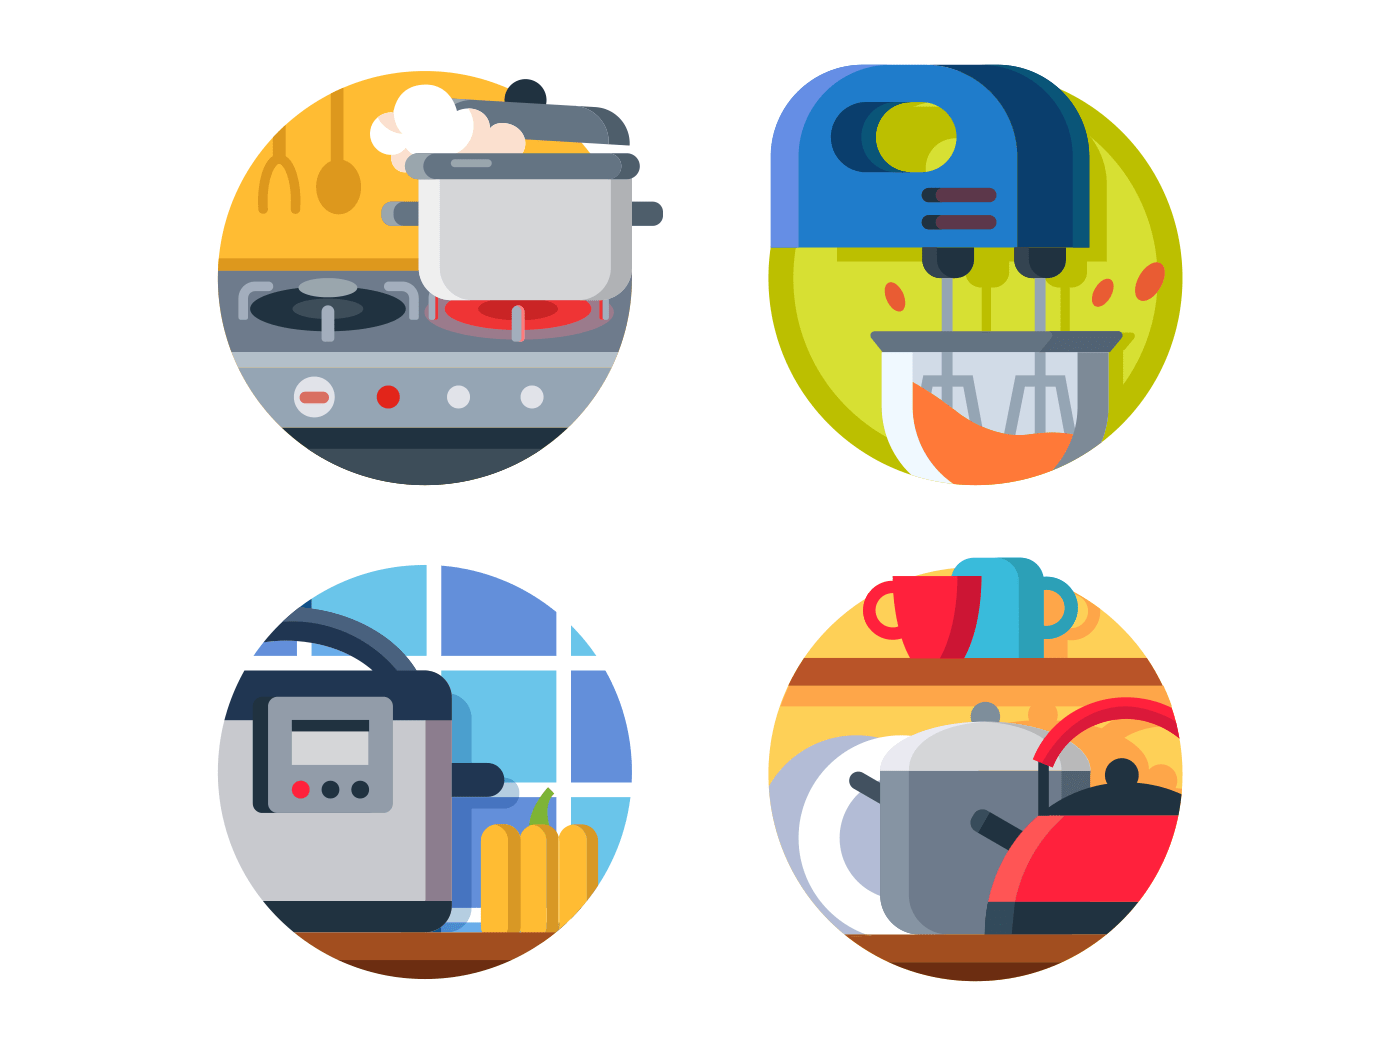 Kitchenware icon stove and kettle icons